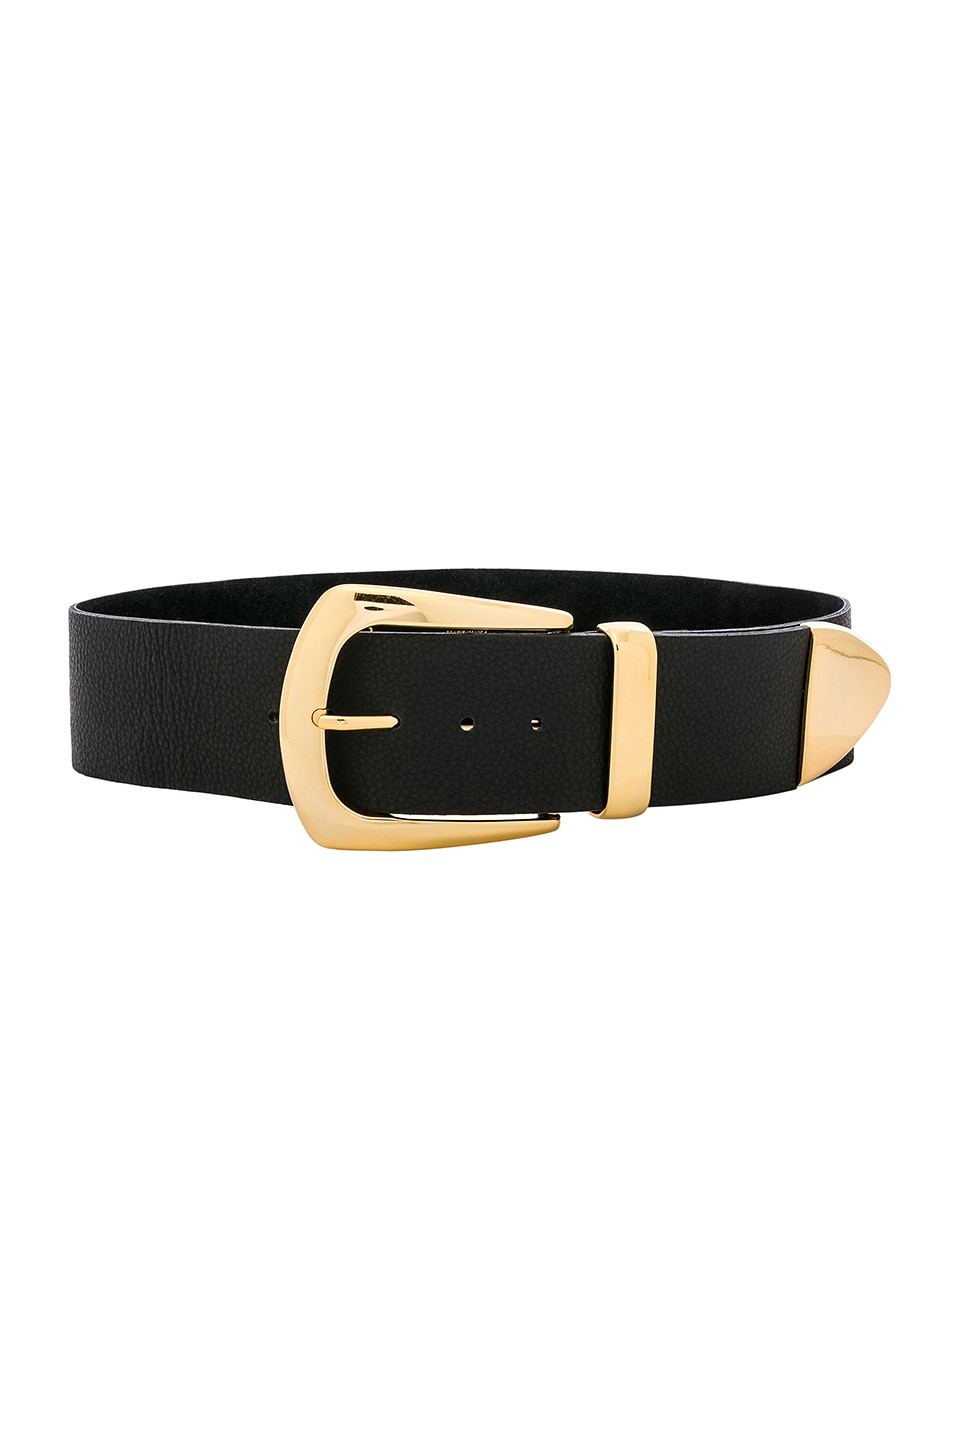 B-Low the Belt Jordana Belt in Black Gold